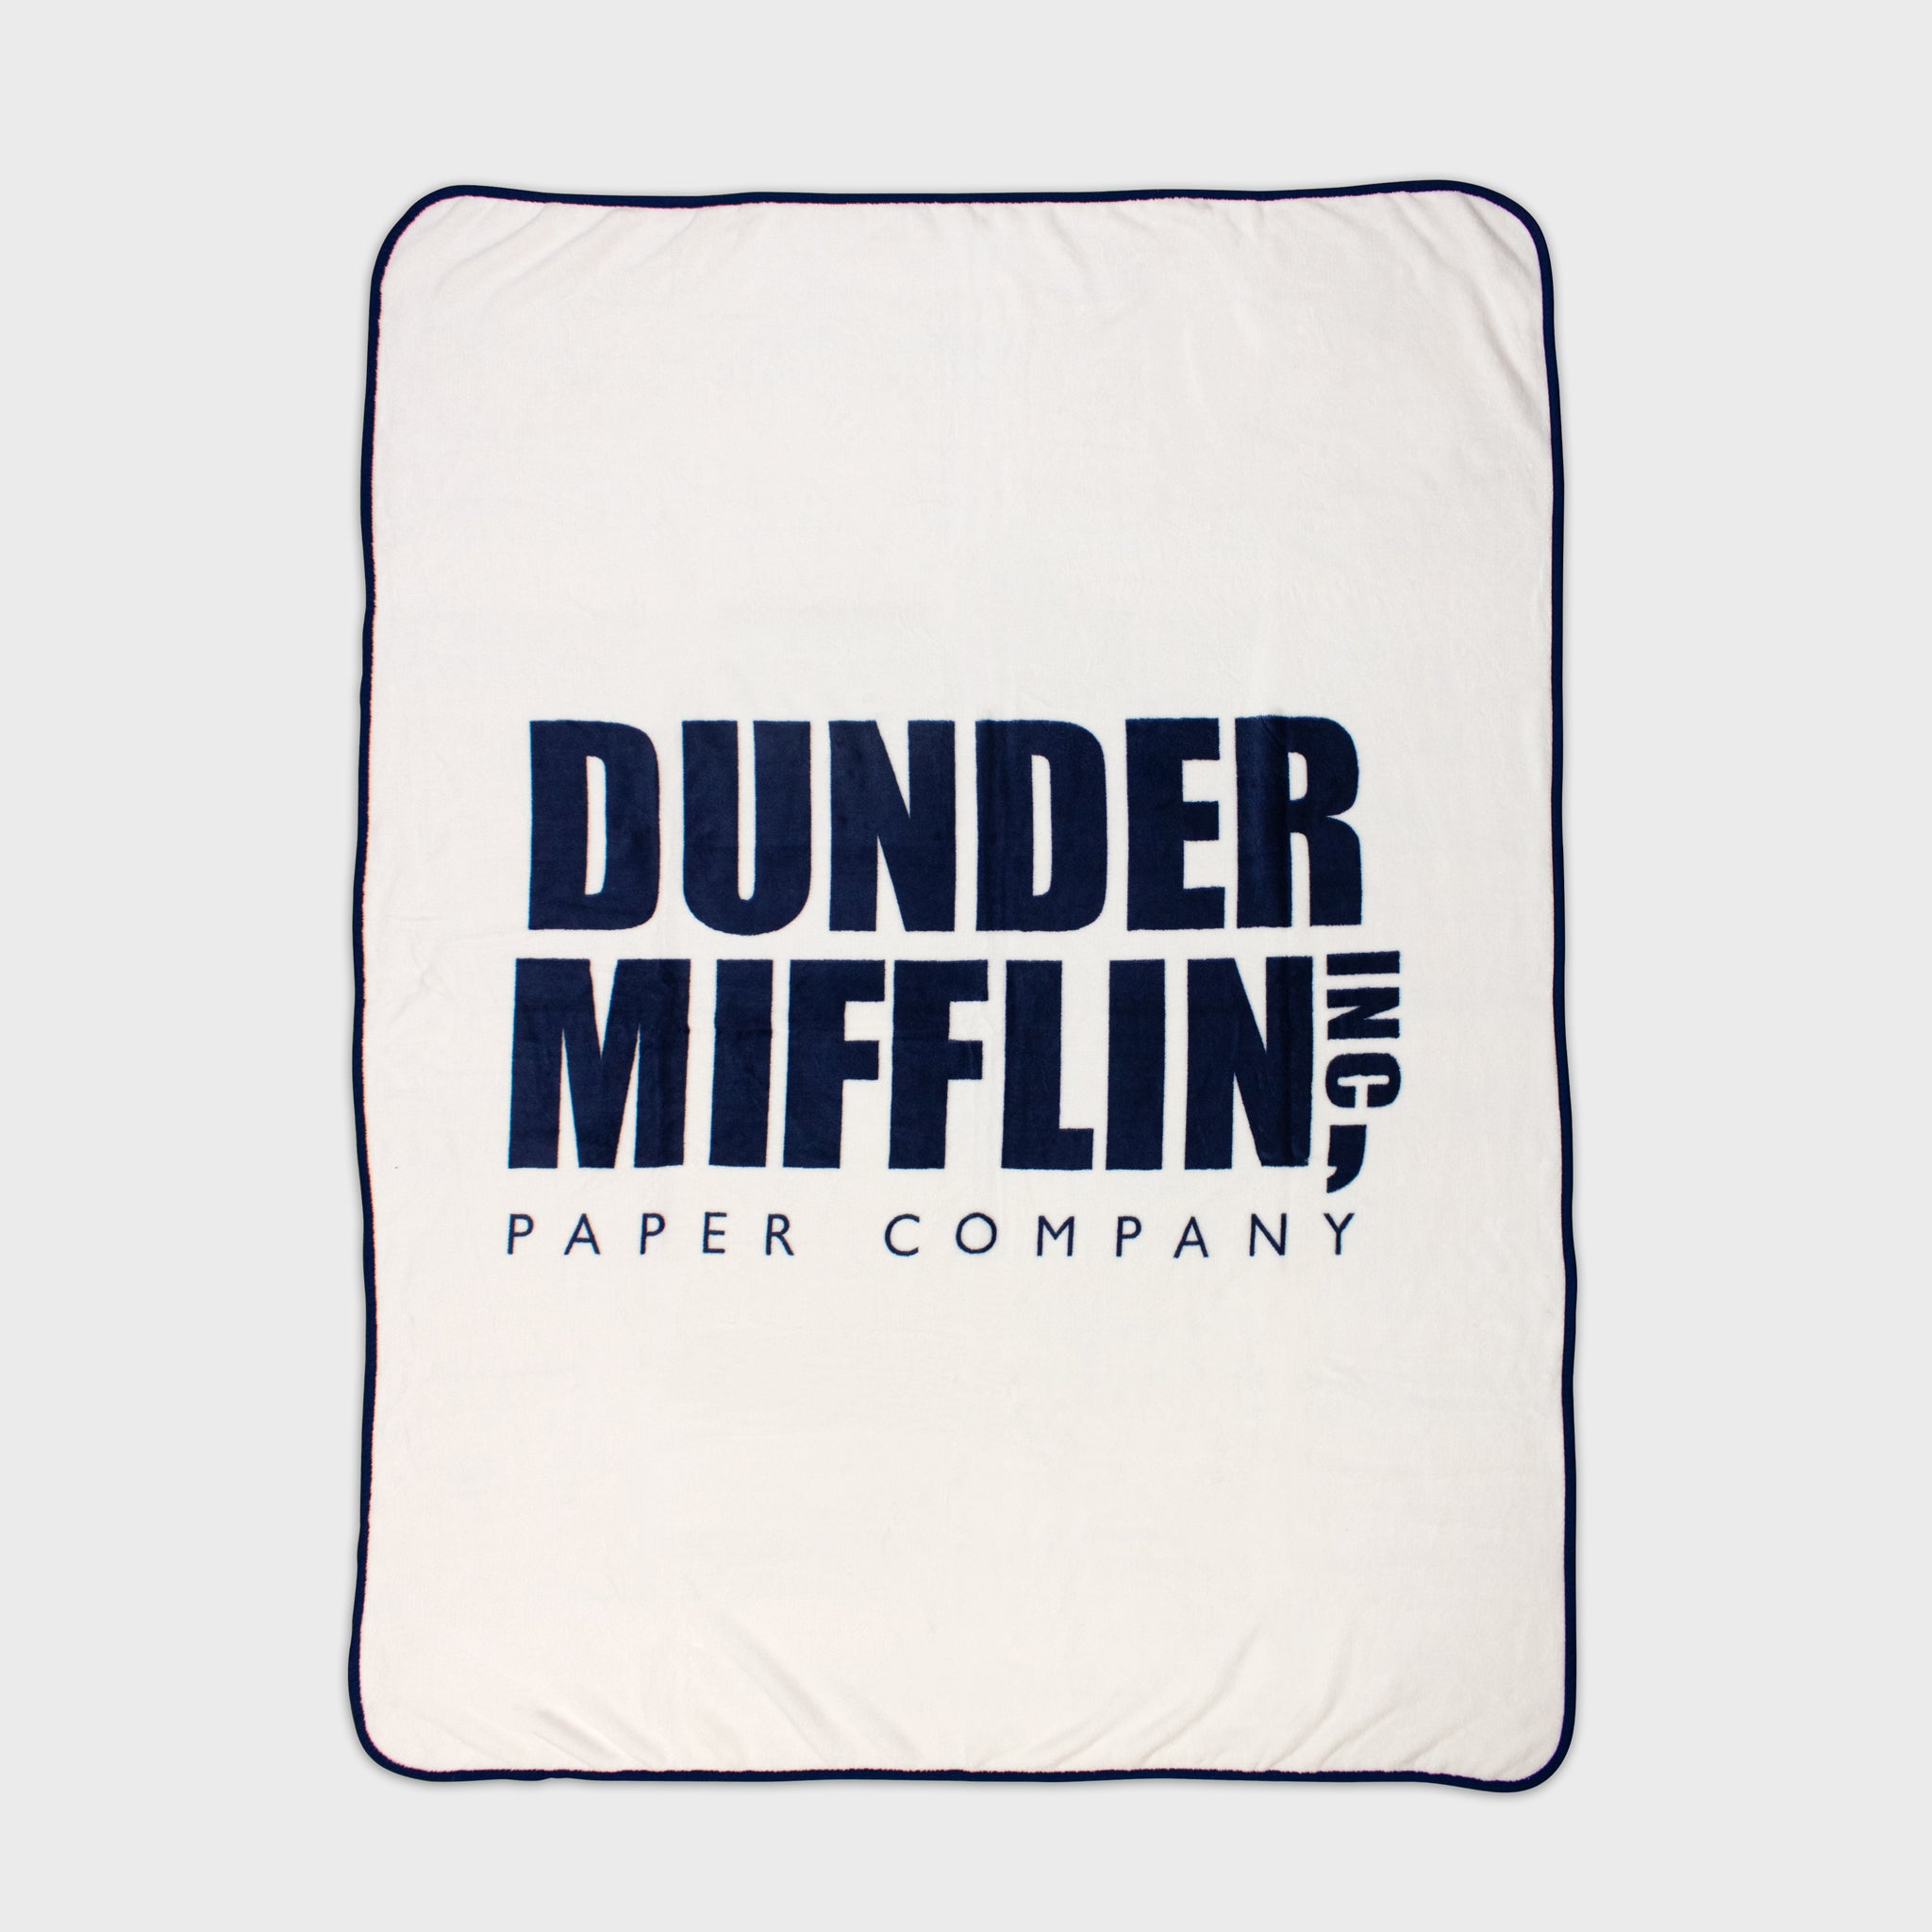 blanket throw blanket plush soft the office dunder mifflin homegood culturefly